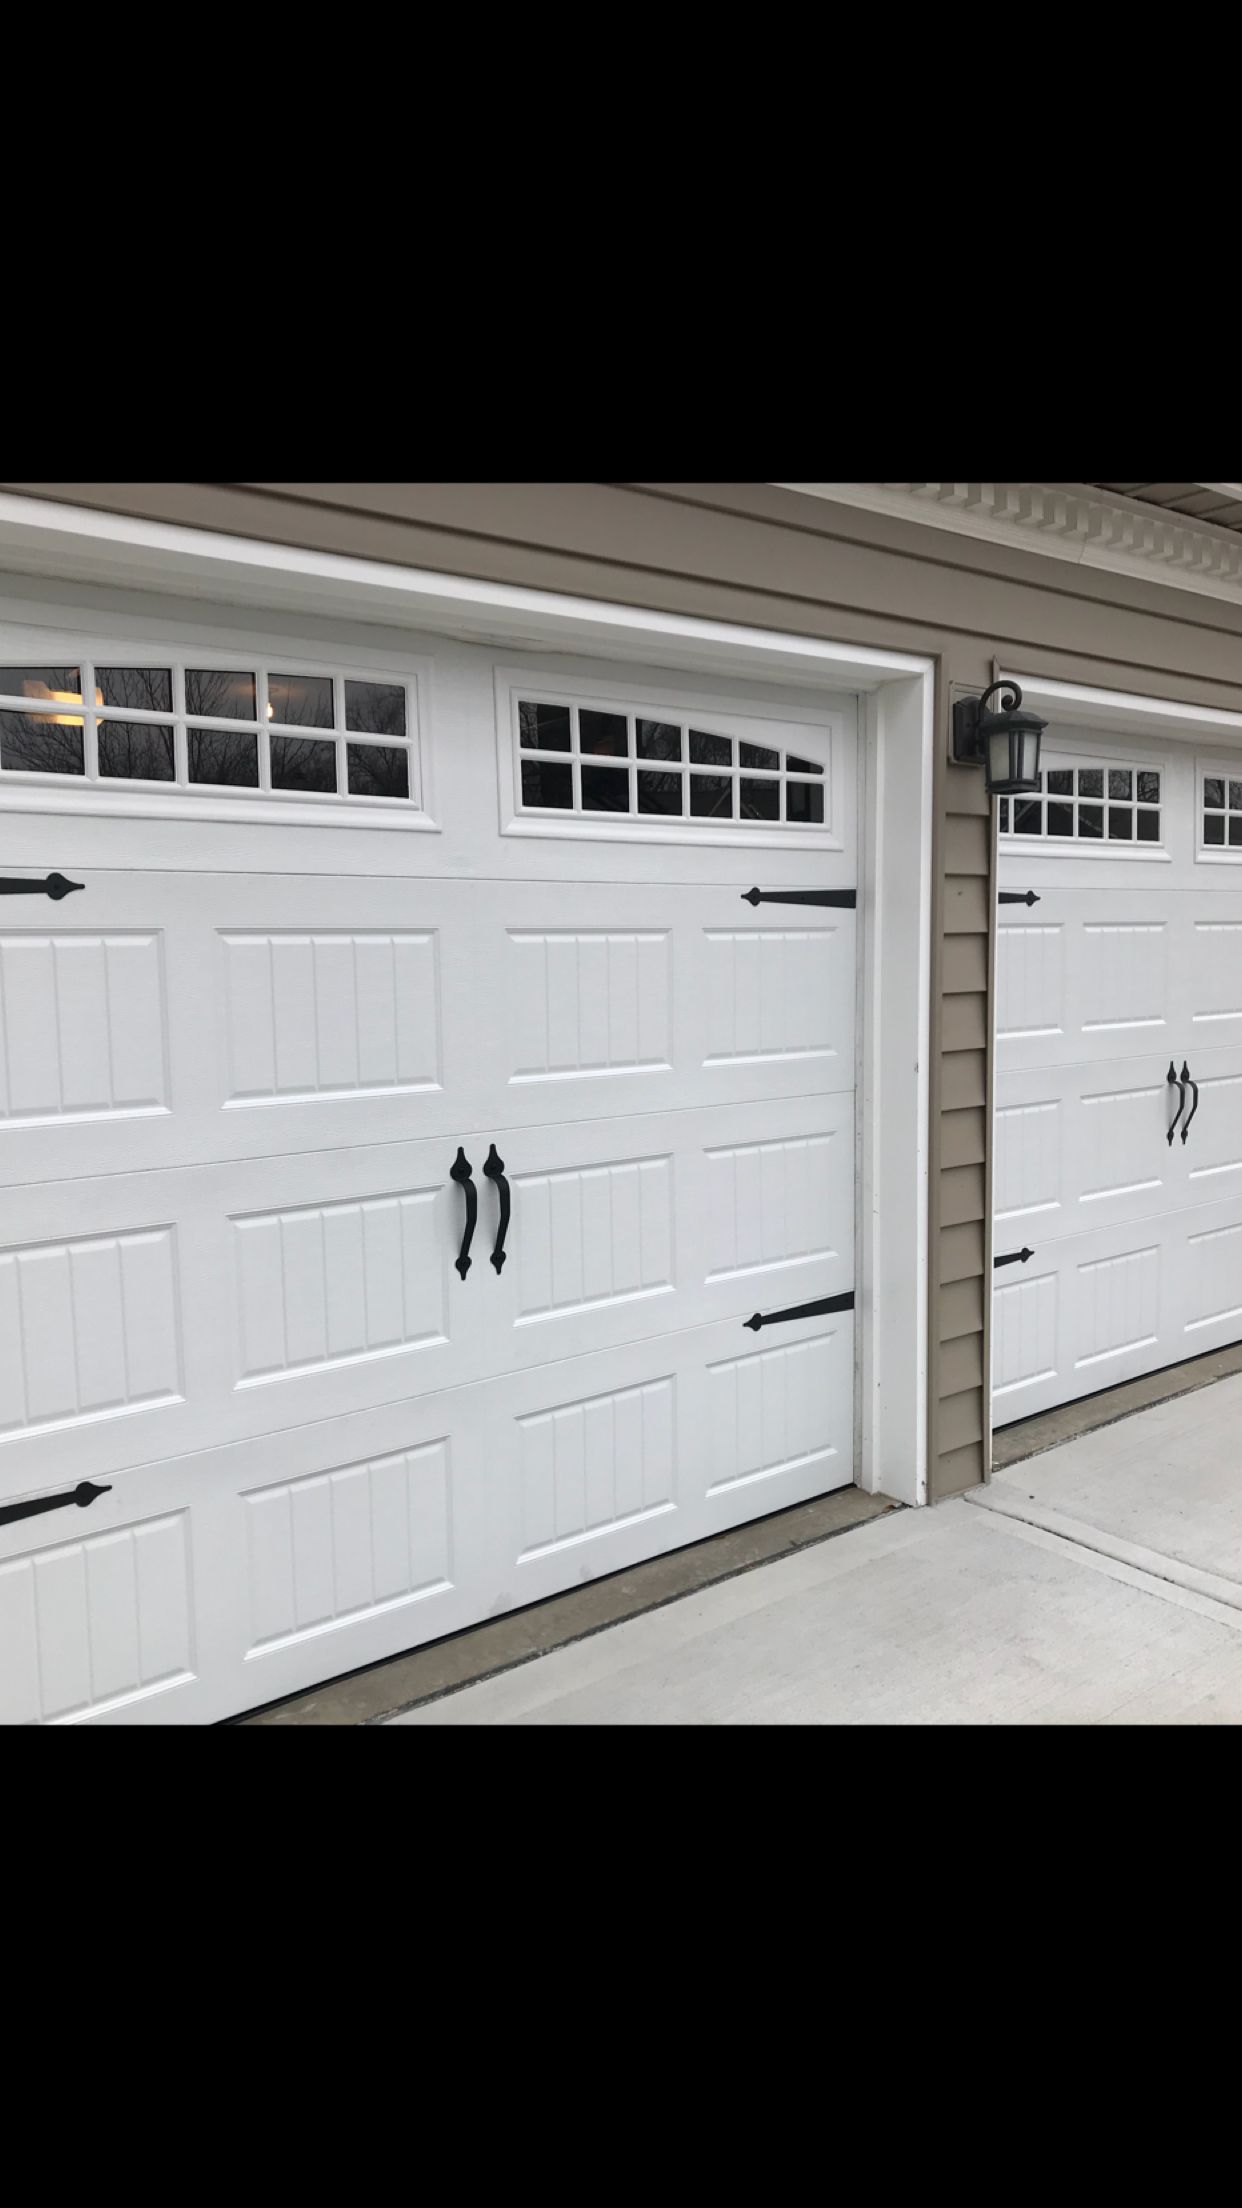 Beautiful White Carriage Style Garage Door With Decorative Hardware And Moonlite Long Carriage Style Garage Doors Garage Doors Garage Door Decorative Hardware